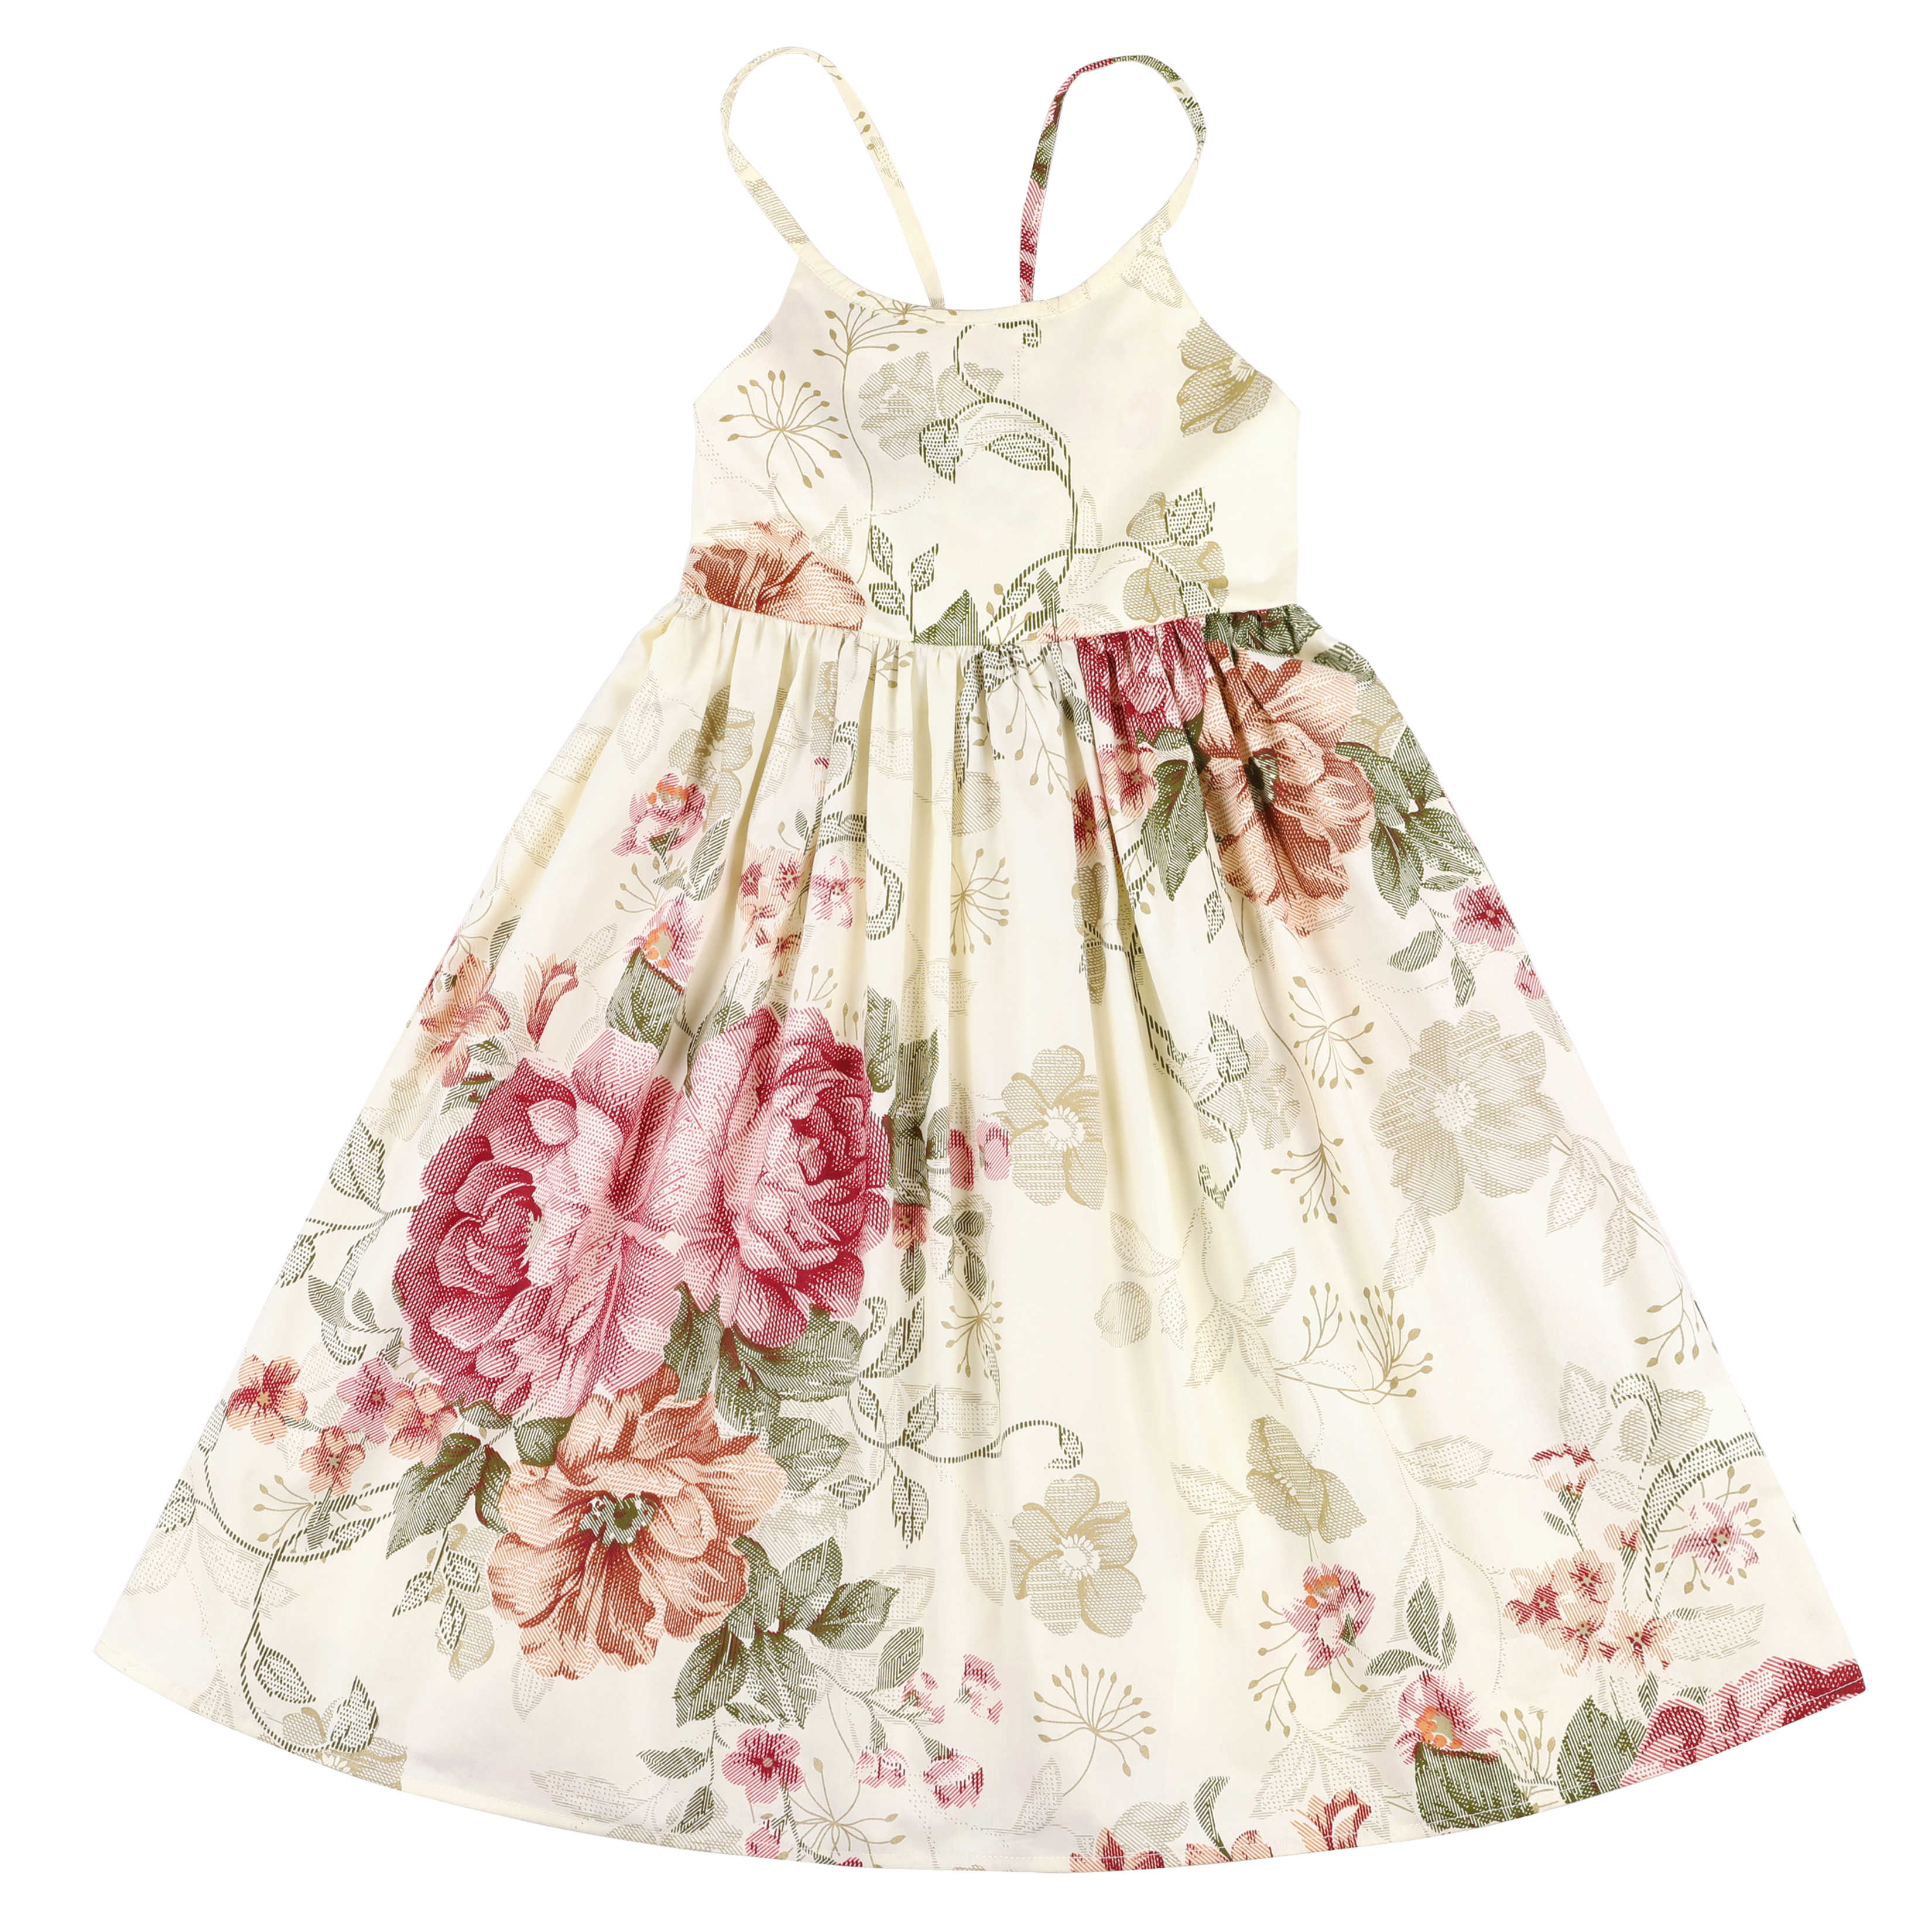 Flofallzique Summer Floral Girls Dress Birthday Party Kids Sundress Baby Clothes